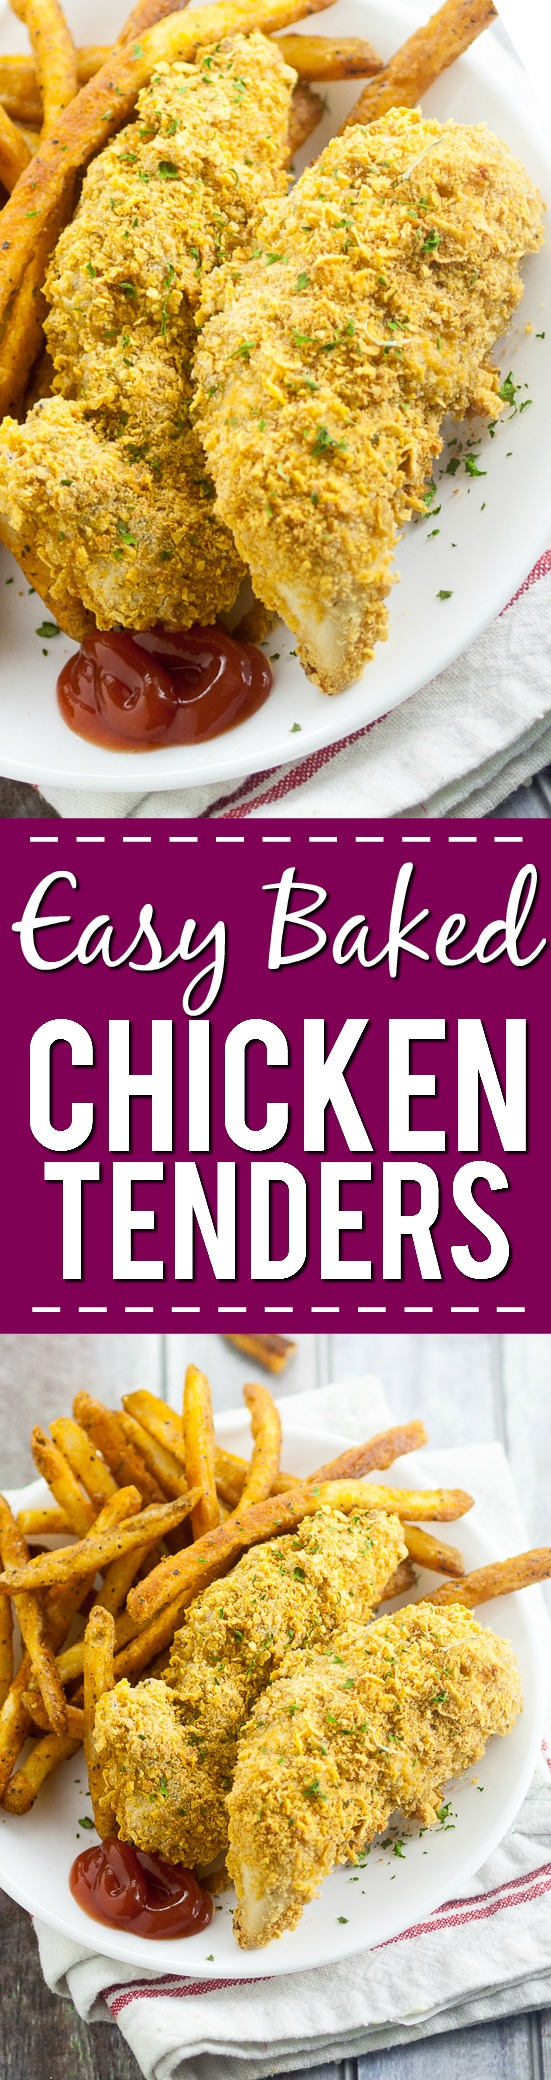 Easy Baked Chicken Tenders Recipe - Use this quick and easy recipe with basic, simple ingredients to make your own homemade Easy Baked Chicken Tenders that both you and the kids will love! Perfect easy food for kids